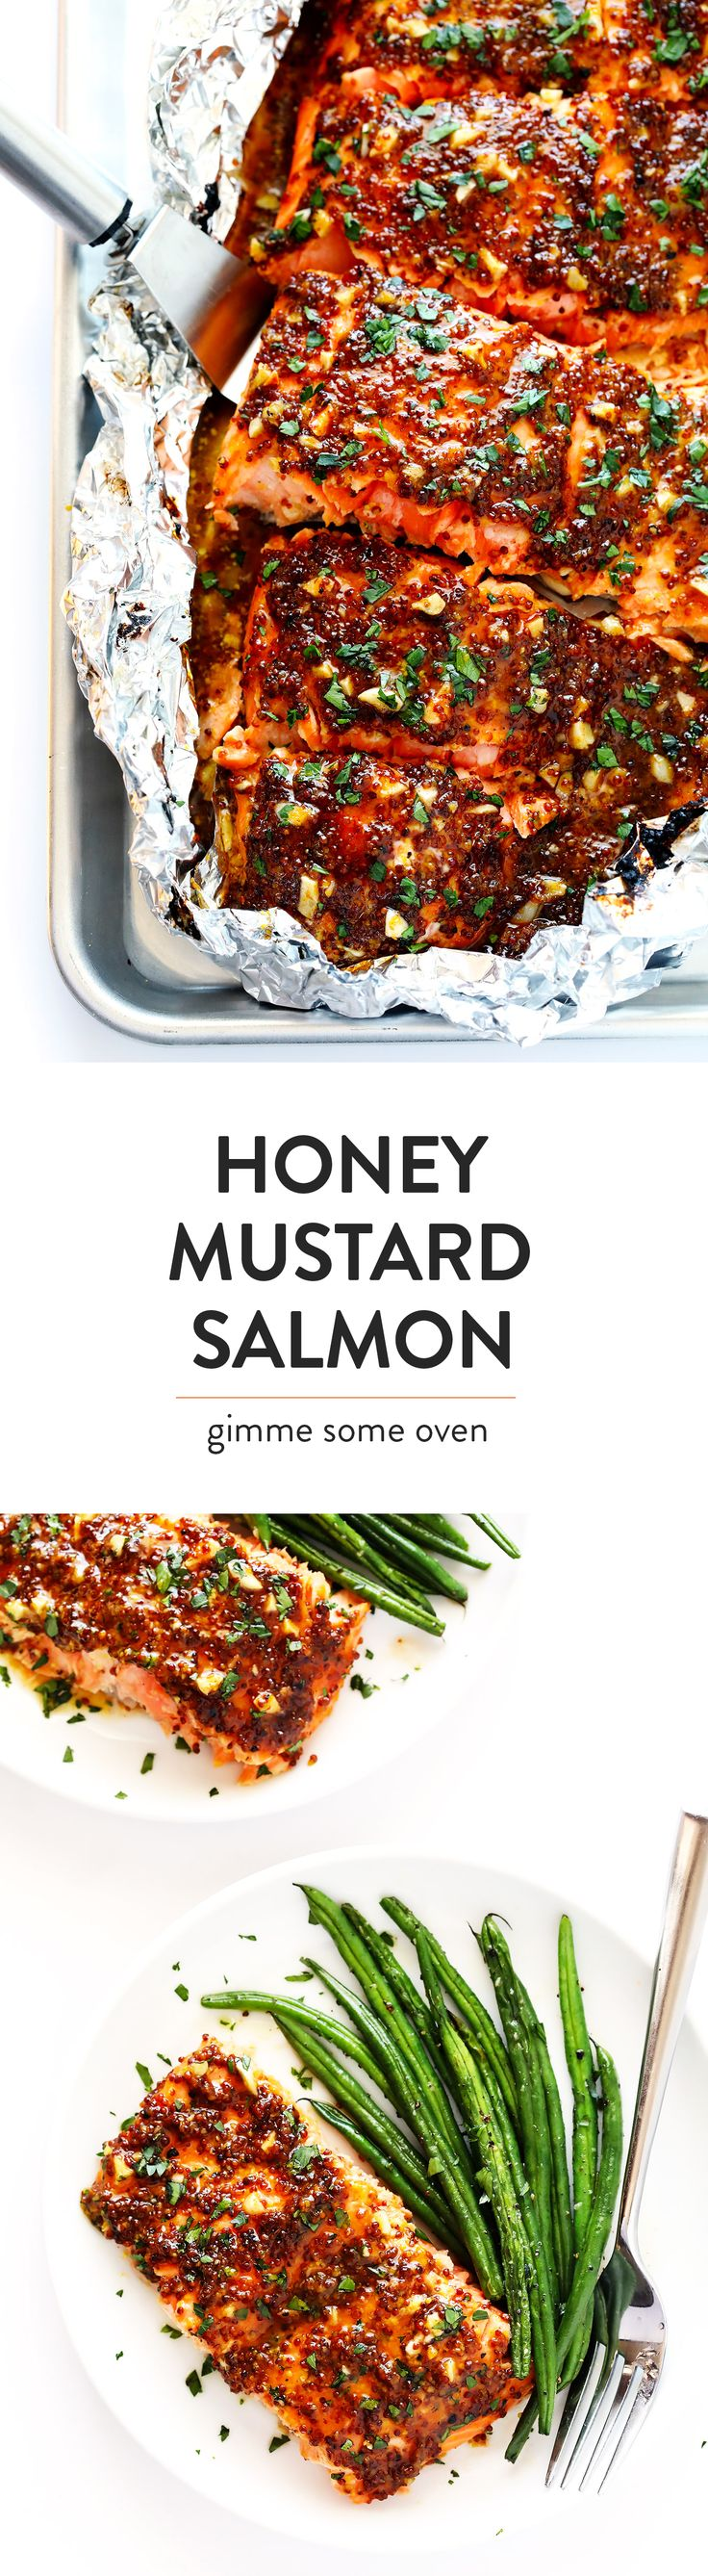 Honey Mustard Salmon In Foil Honey Mustard Salmonseafood Recipesfish